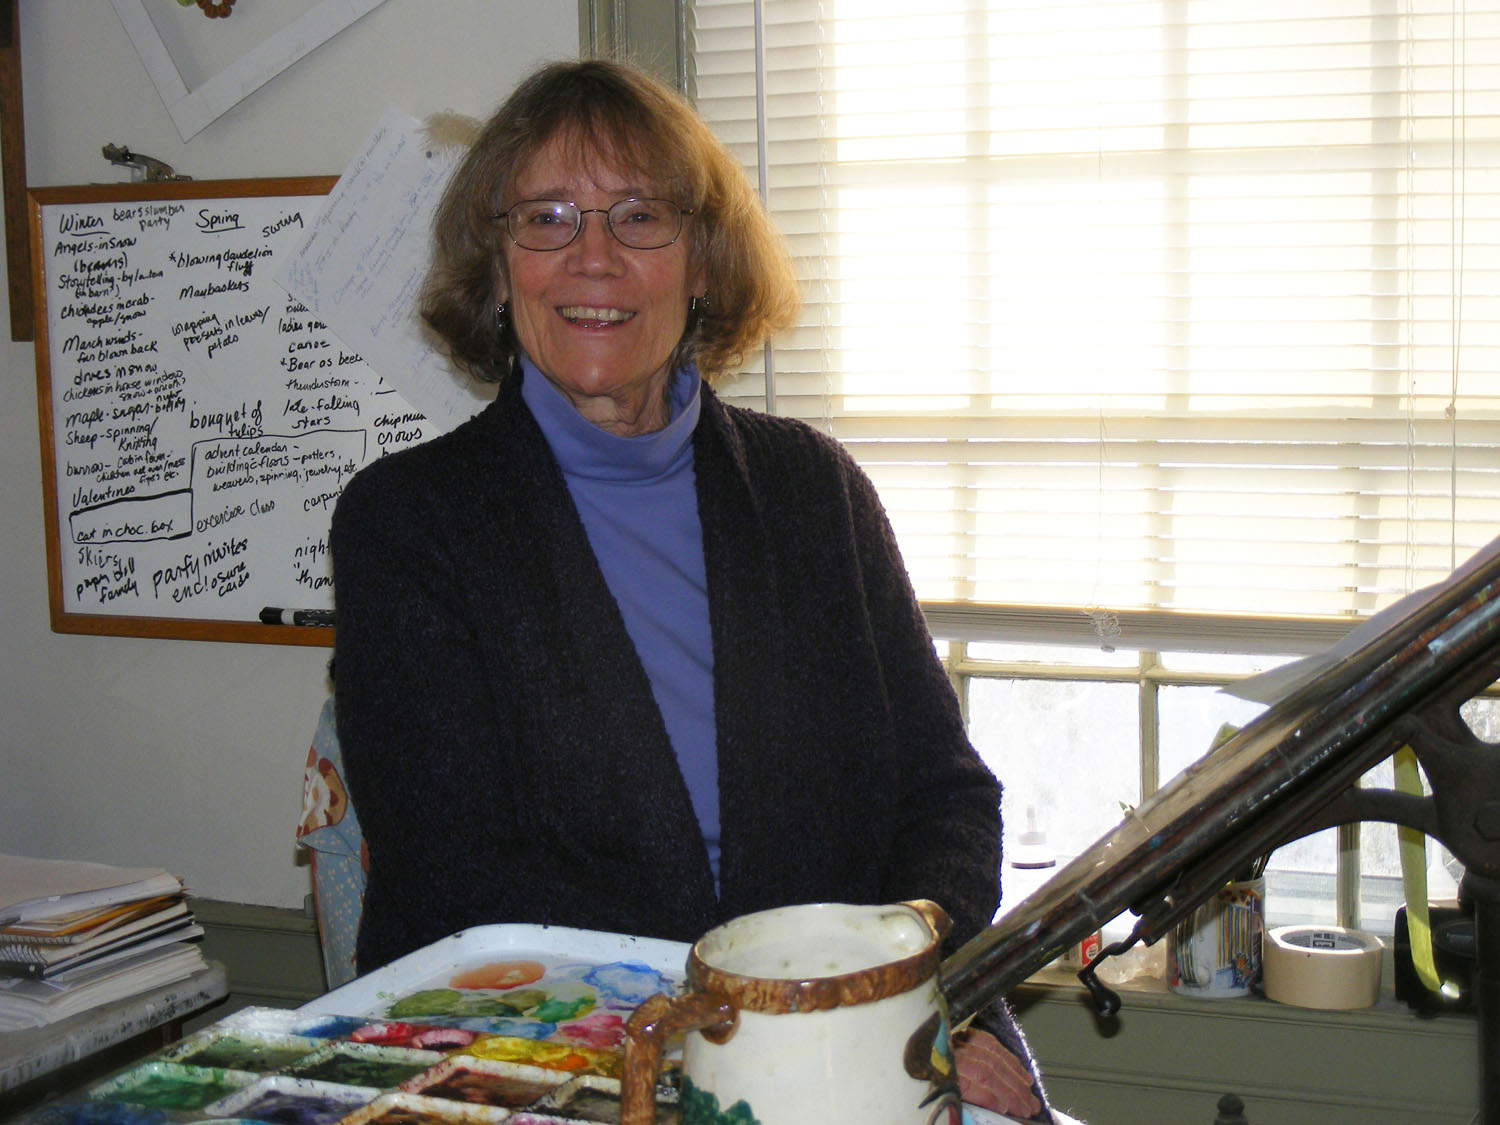 Cindy Hendrick - All Woodfield Press artwork is created by Cindy. She uses pen and ink and watercolors to create her images. Her settings are taken from the New England woodland and coastal landscape and show her love of nature, gardening, and the animals that frequent her environment.